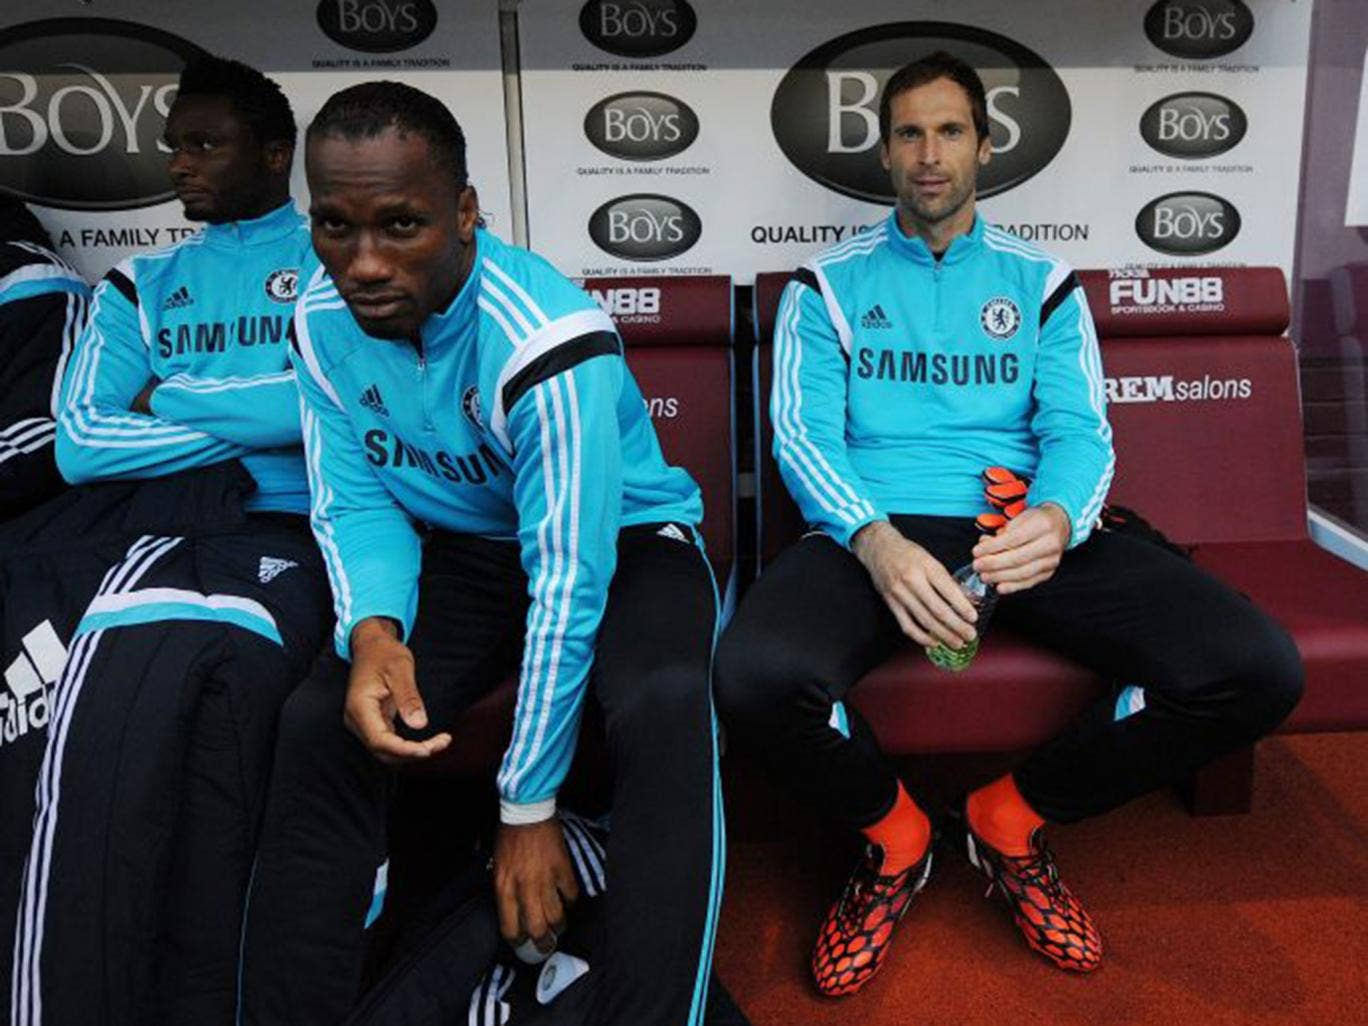 Petr Cech (right) and Chelsea's Didier Drogba (left) sit on the bench before the match between Burnley and Chelsea on Monday